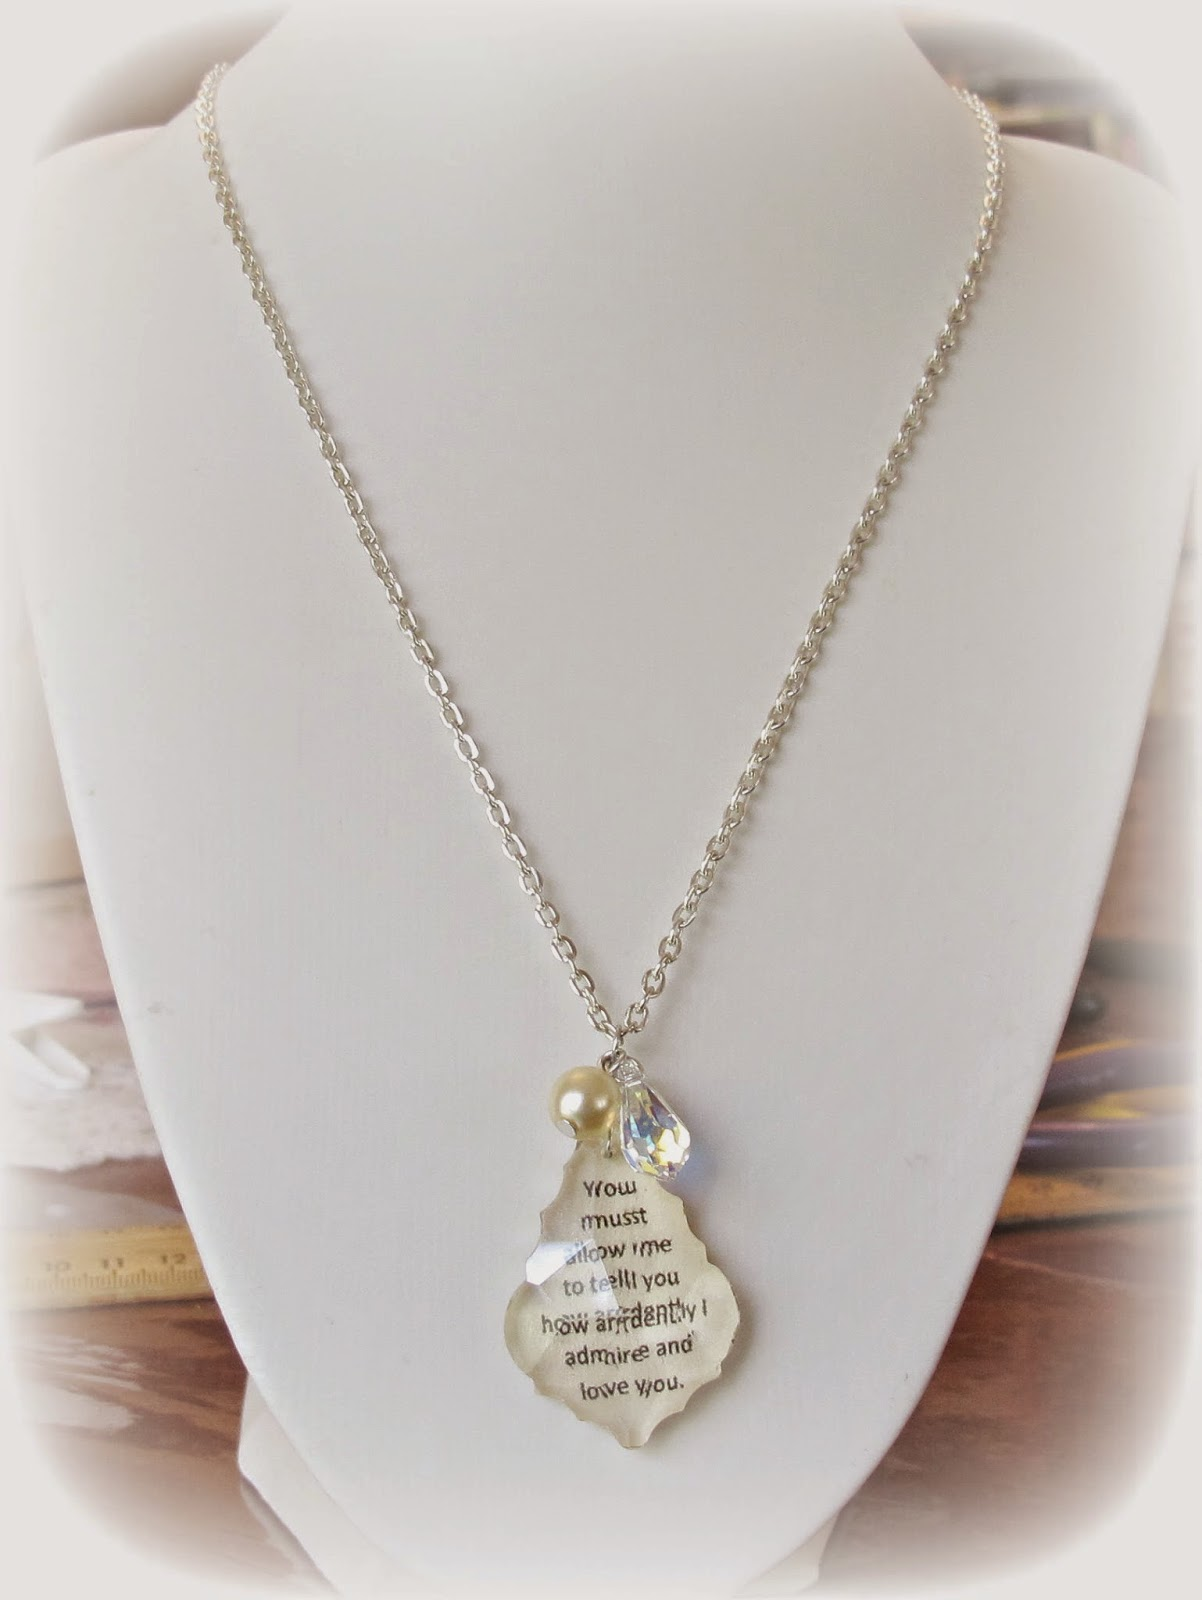 image mr darcy necklace bridal wedding pride and prejudice jane austen swarovski crystal cream pearl baroque faceted chandelier pendant you must allow me to teel you how ardently i admire and love you